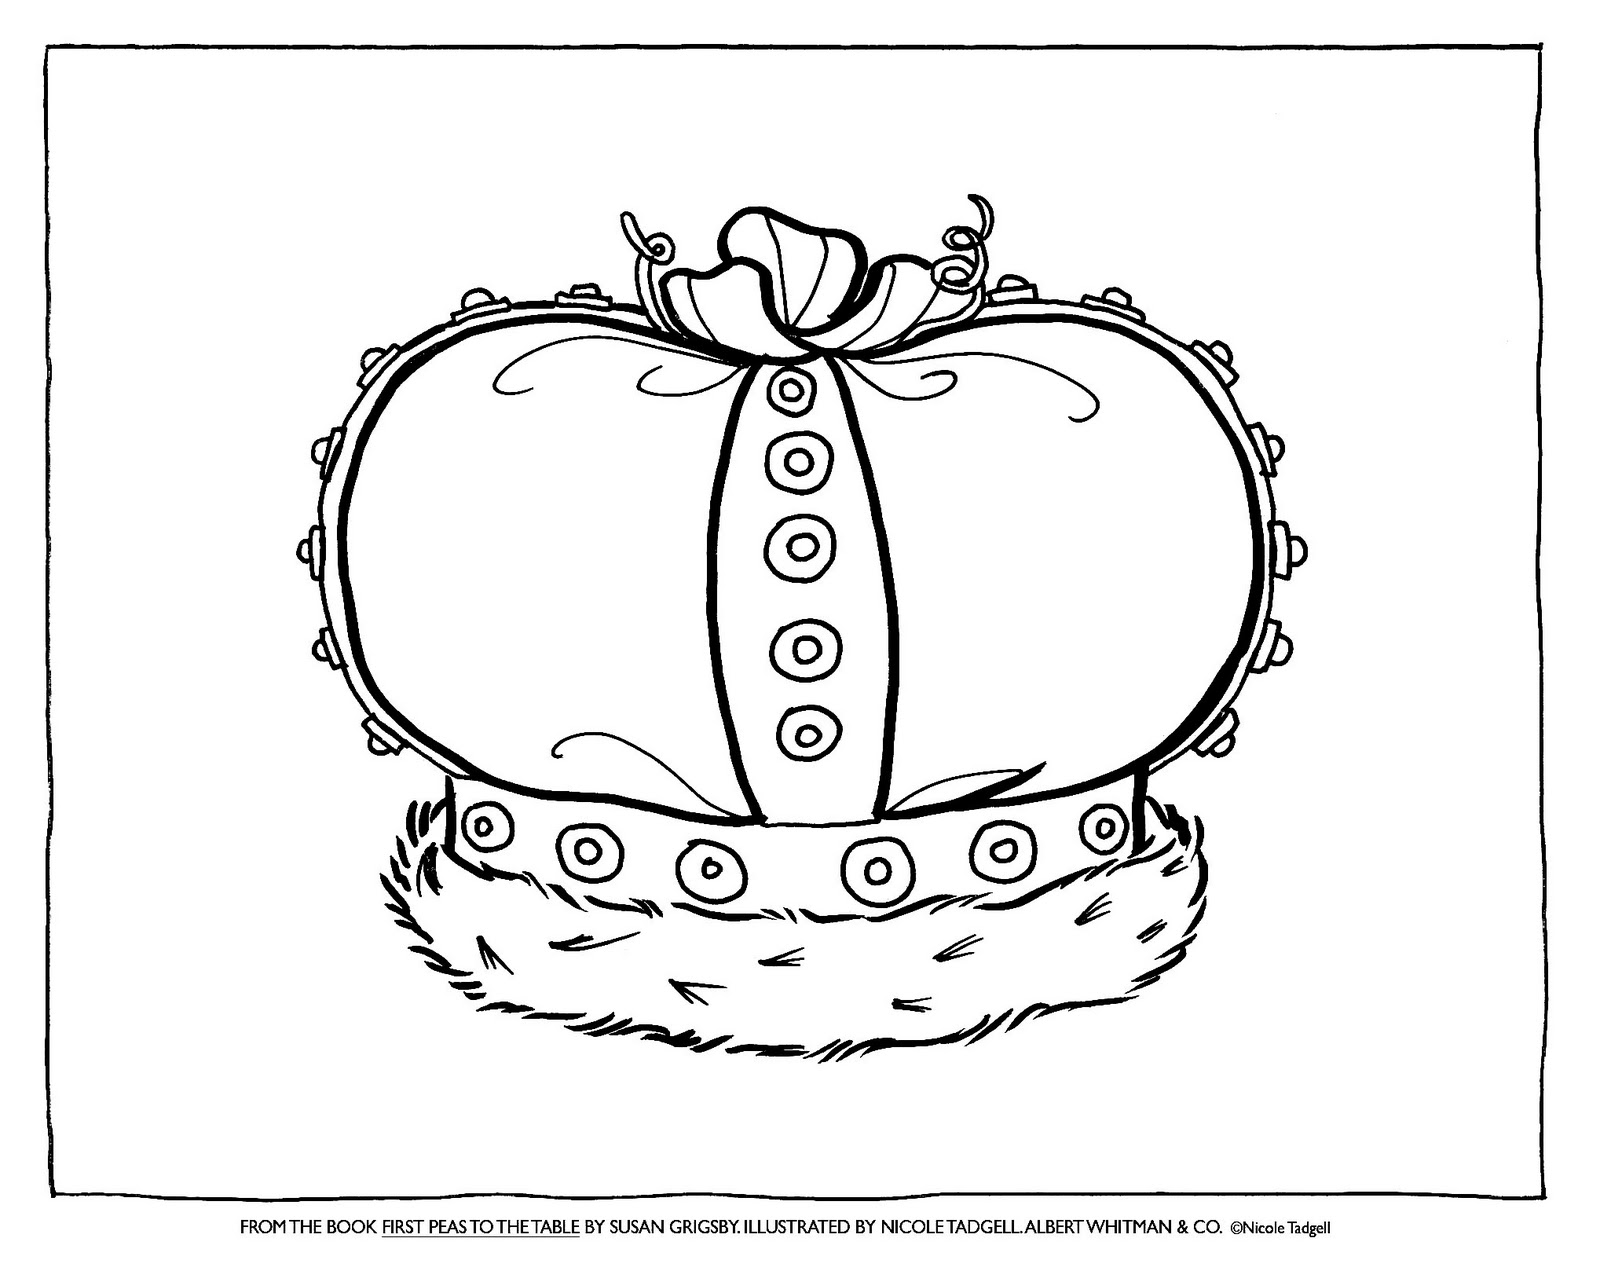 Nicole Tadgell Illustration Coloring Pages For First Peas